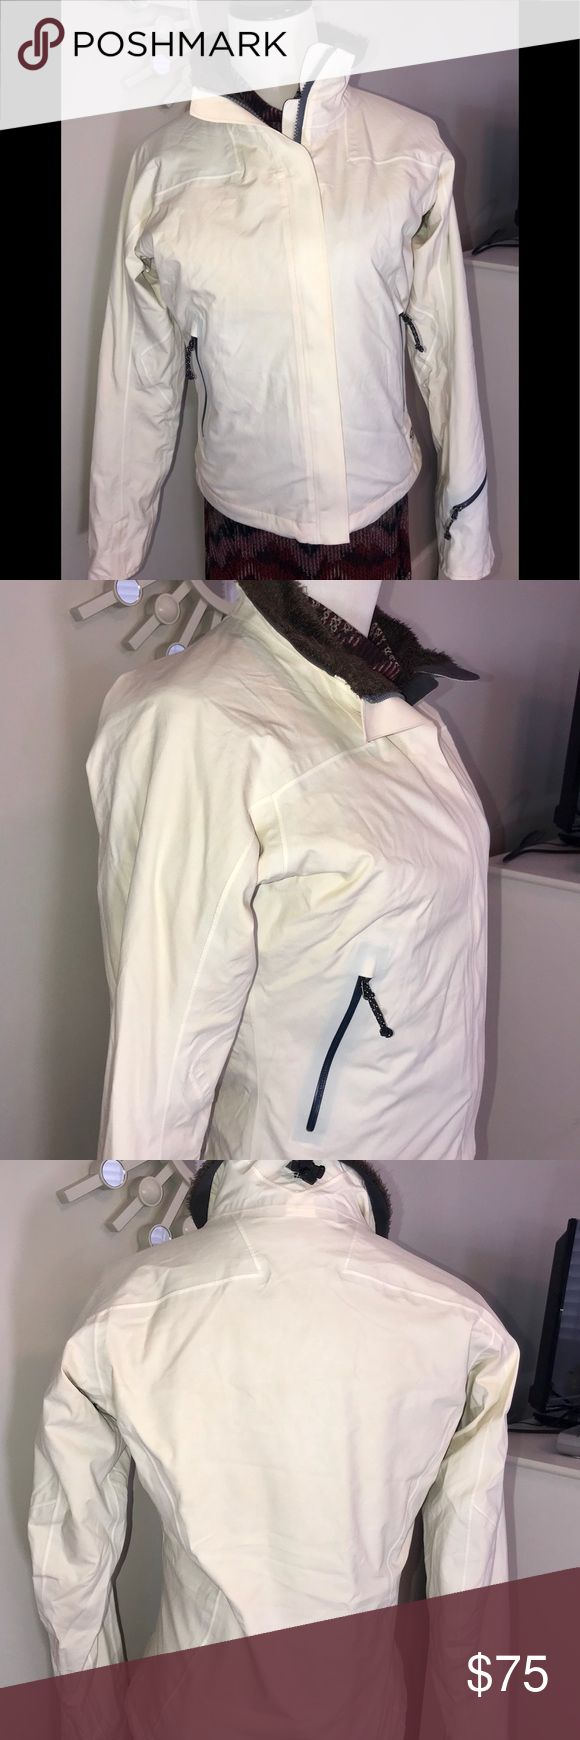 NWOT MOUNTAIN HARD WEAR JACKET XS CREAM BROWN THIS JACKET IS BRAND NEW NEVER WORN OR WASHED. NWOT. CREAM JACKET WITH CHOCOLATE BROWN LINER. 2 INSIDE ZIP POCKETS. OUTSIDE POCKETS, A ZIP POCKET ON SLEEVE. ADJUSTABLE WAIST. XS PLEASE SEE PICS FOR DETAILED MEASUREMENTS. GORGEOUS JACKET. Mountain Hardwear Jackets & Coats